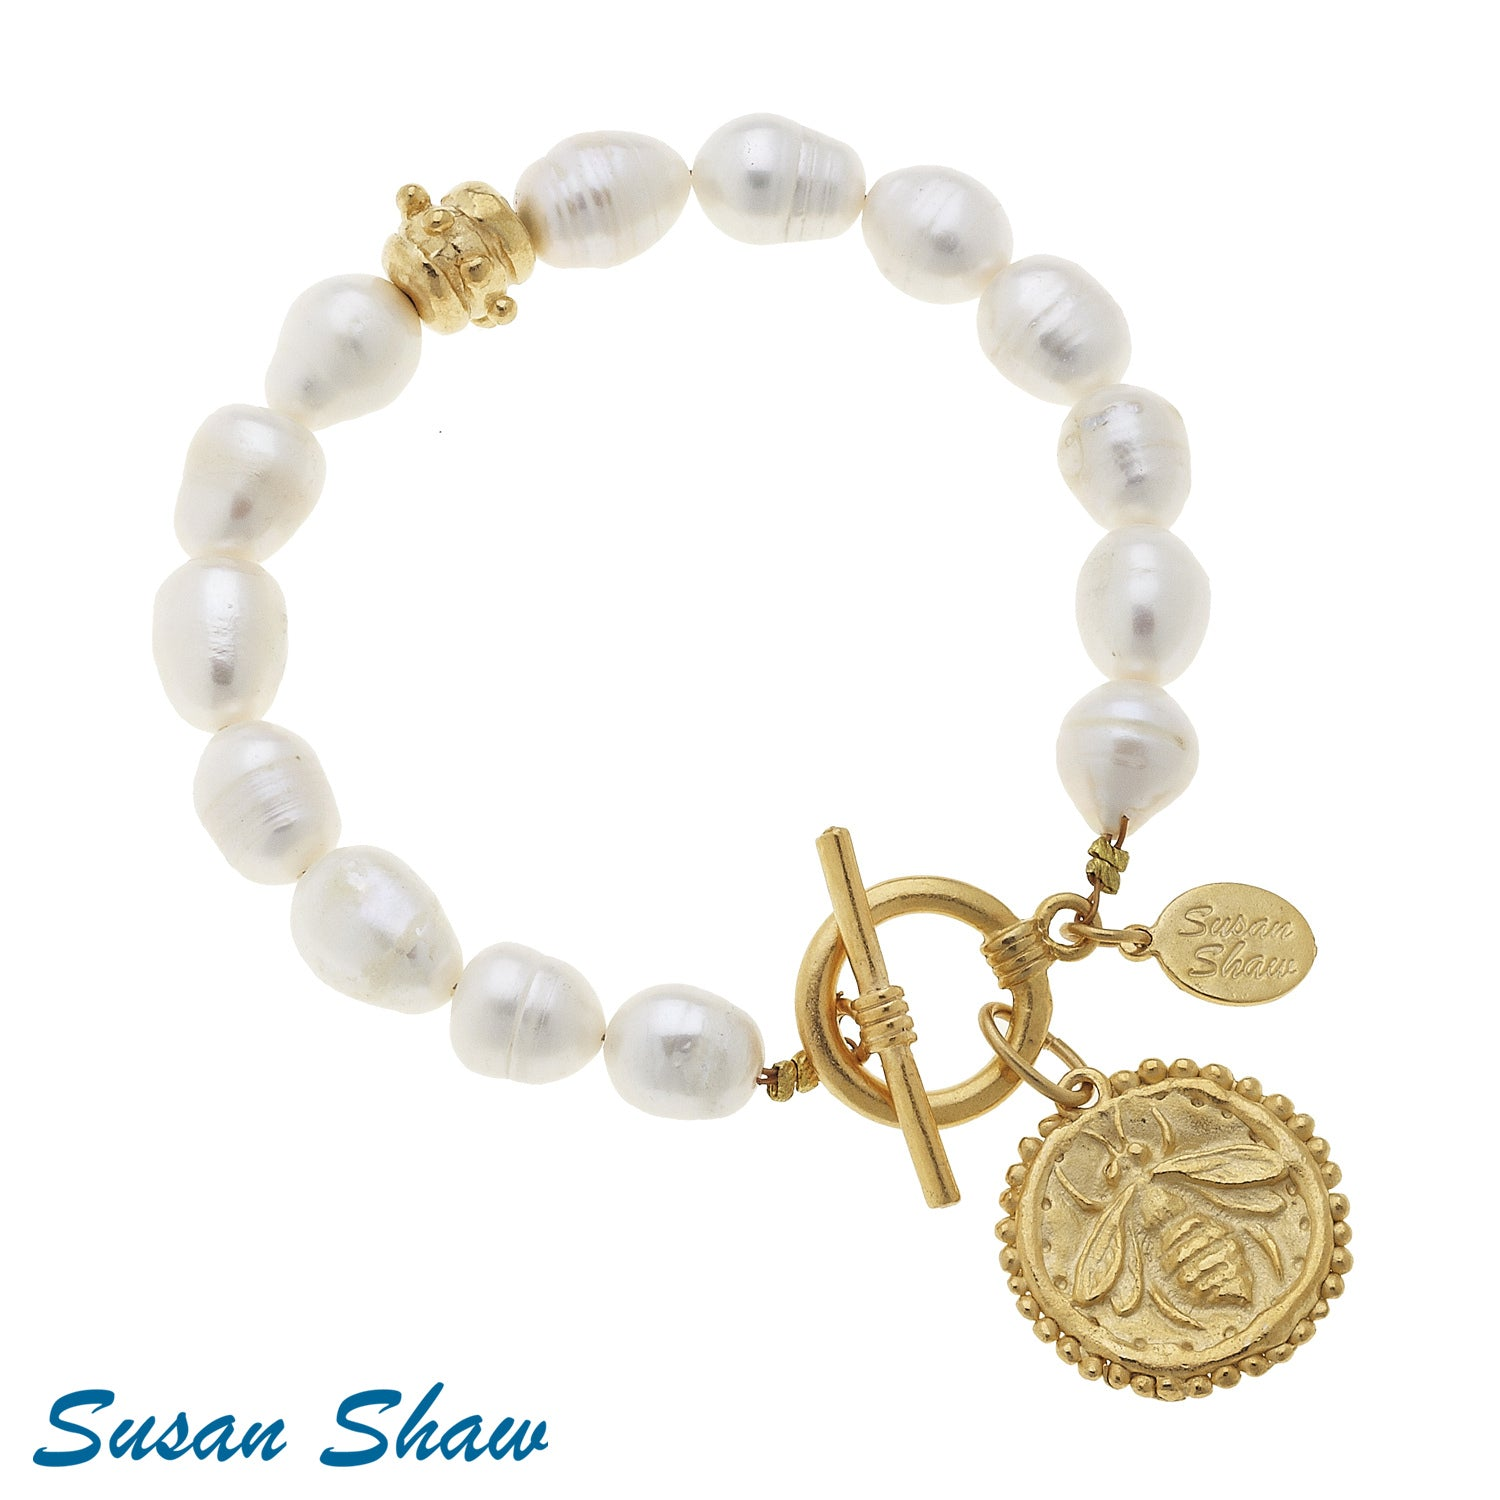 Susan Shaw Handcast Gold Bee Freshwater Pearl Bracelet